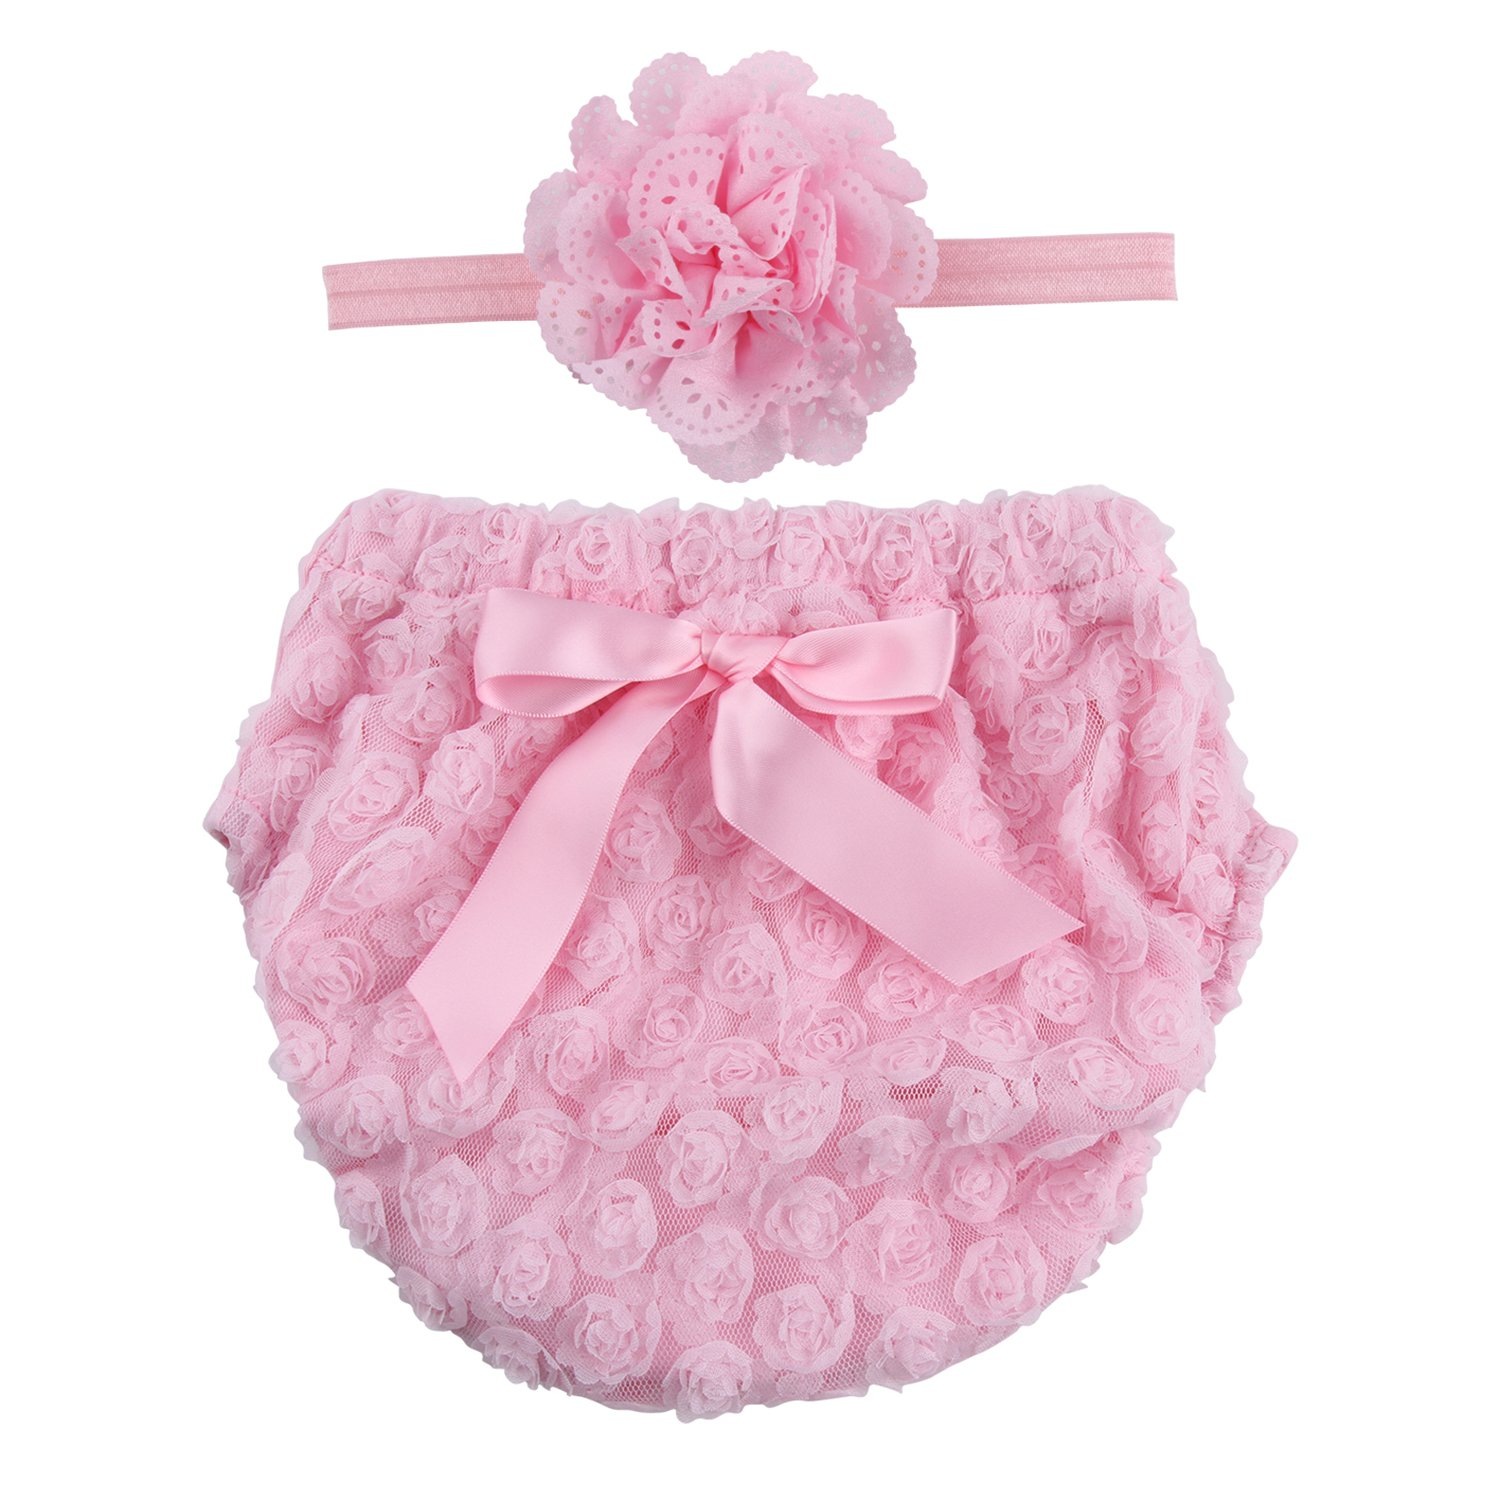 d445e362e8f7e Get Quotations · ICObuty Rose Ruffle Bloomer Diaper Cover and A Flower  Headband for Baby Girls Toddlers